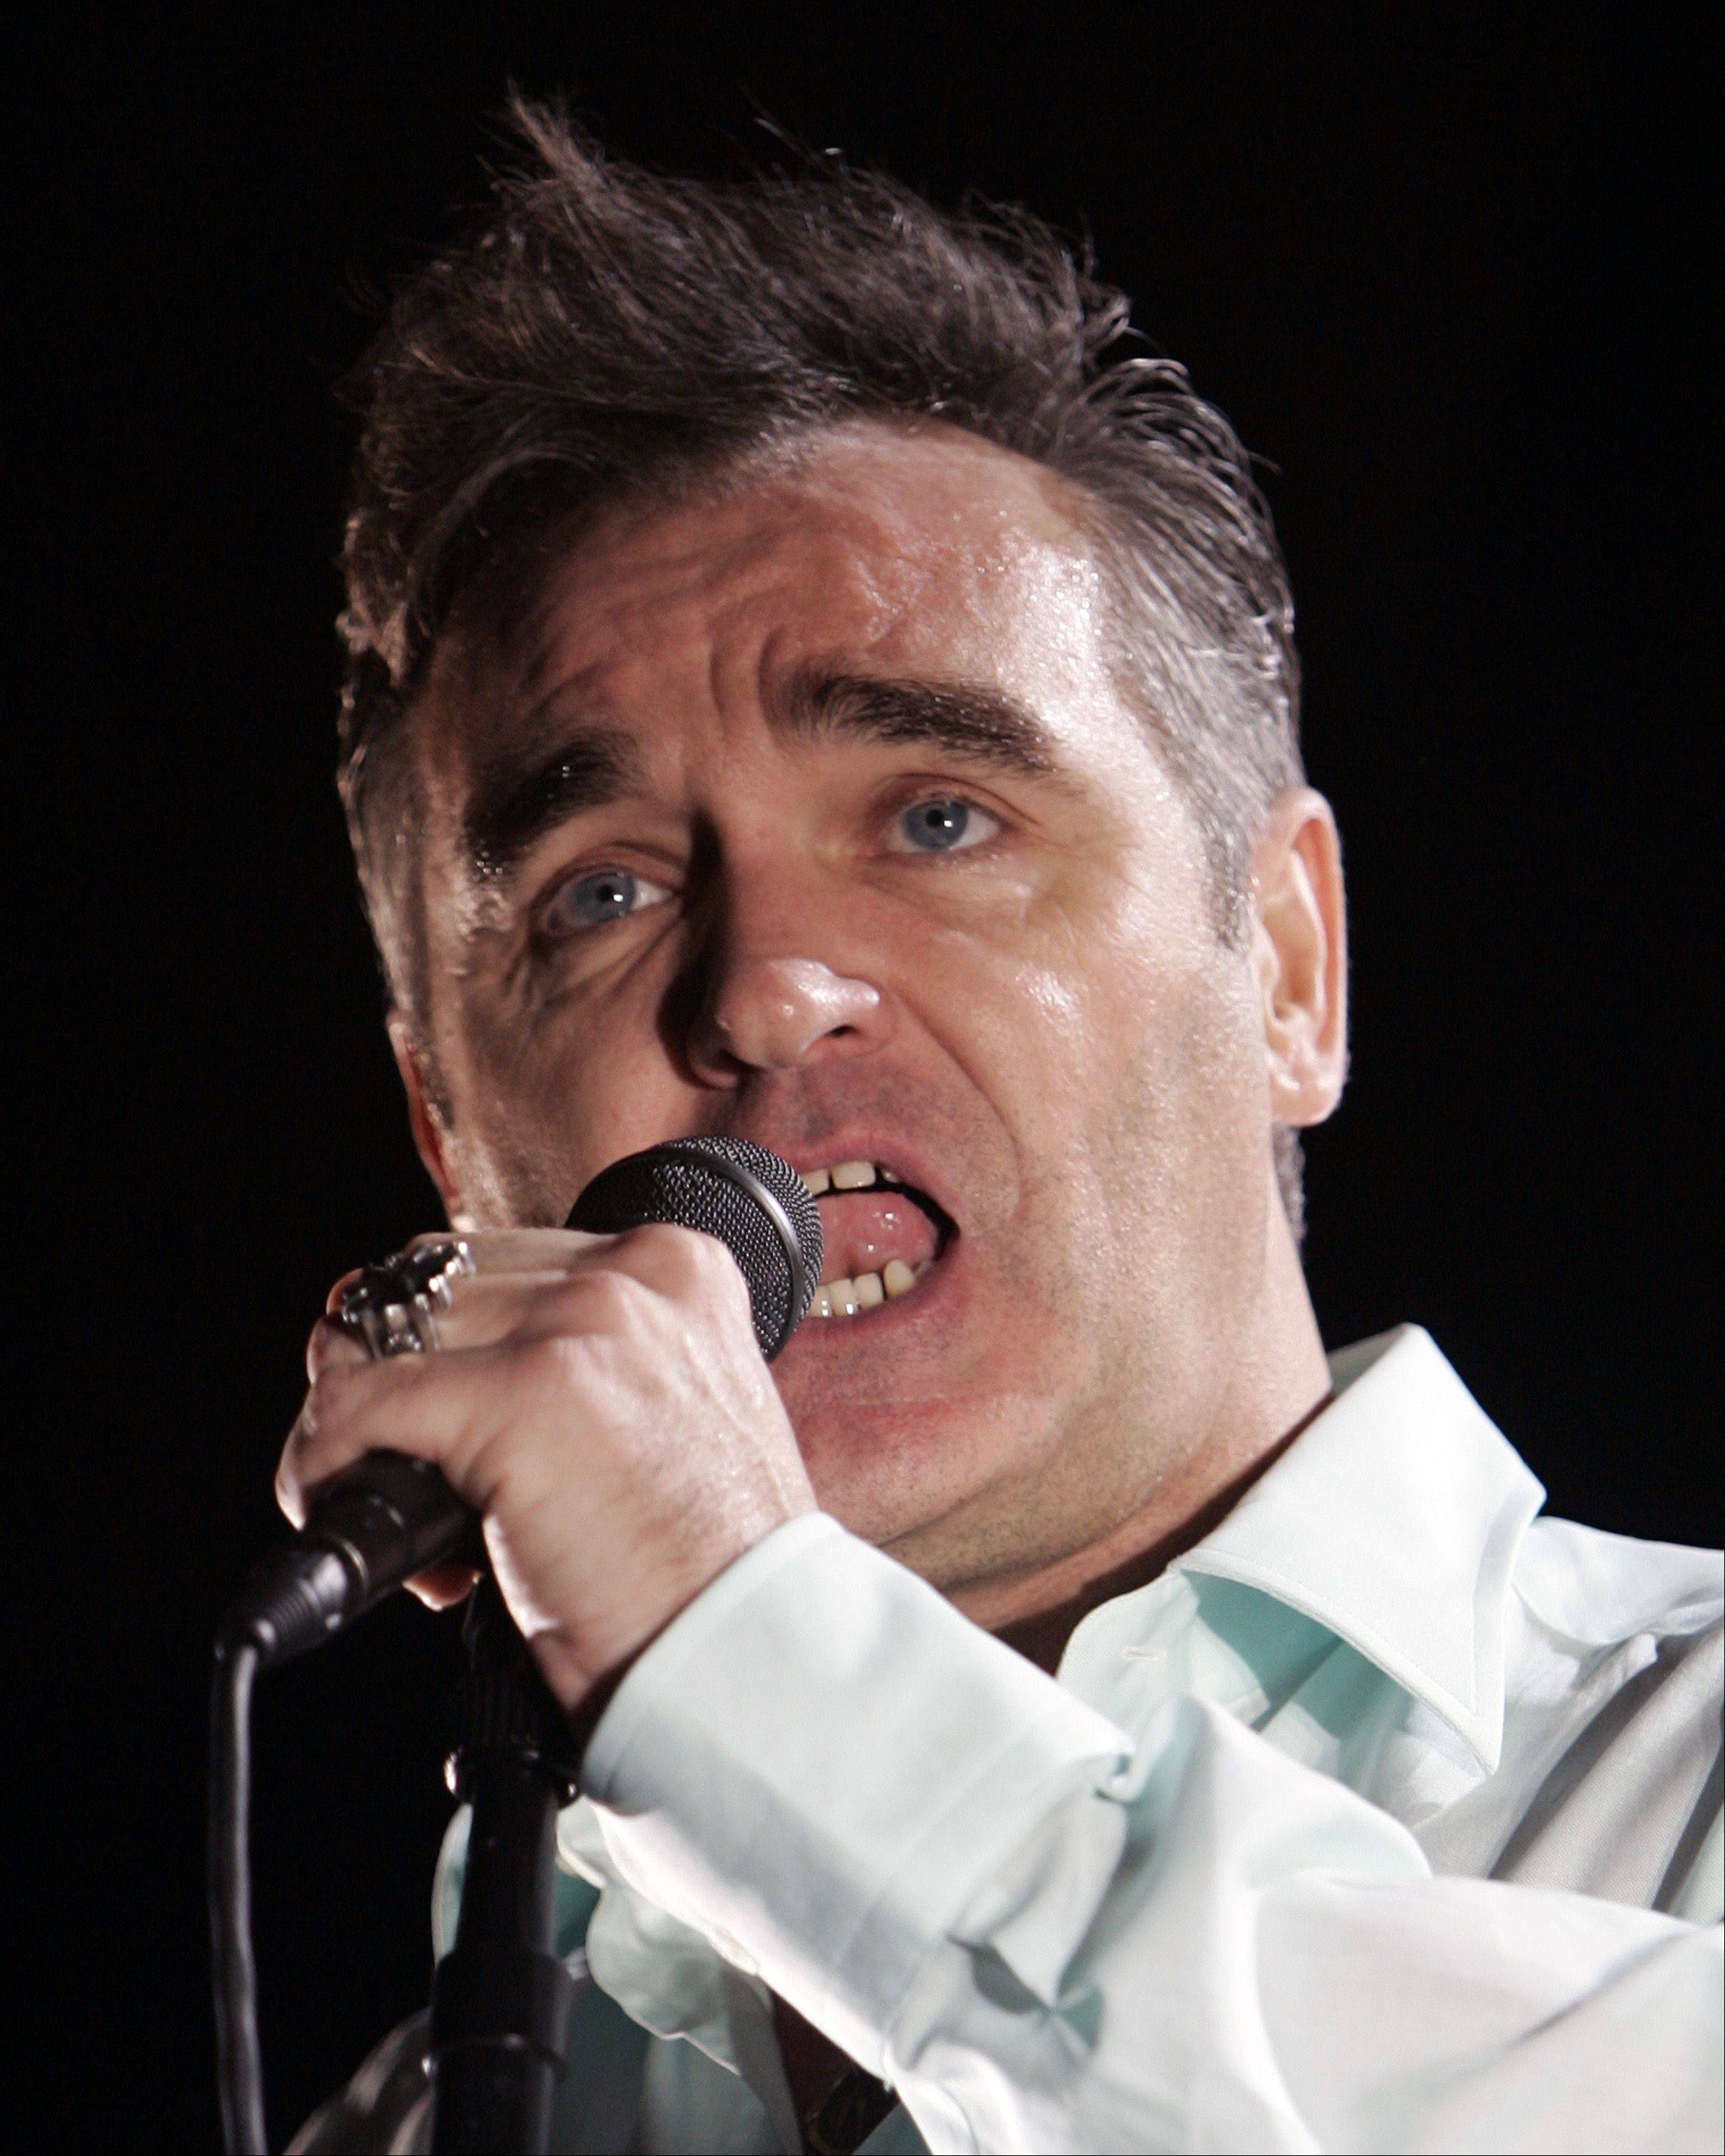 British singer and songwriter and the former frontman for The Smiths, Morrissey, has postponed concert dates in Pittsburgh, Columbus, Flint and Chicago due to an illness in the family. Ticketholders are asked to keep their tickets until a rescheduled date is announced.